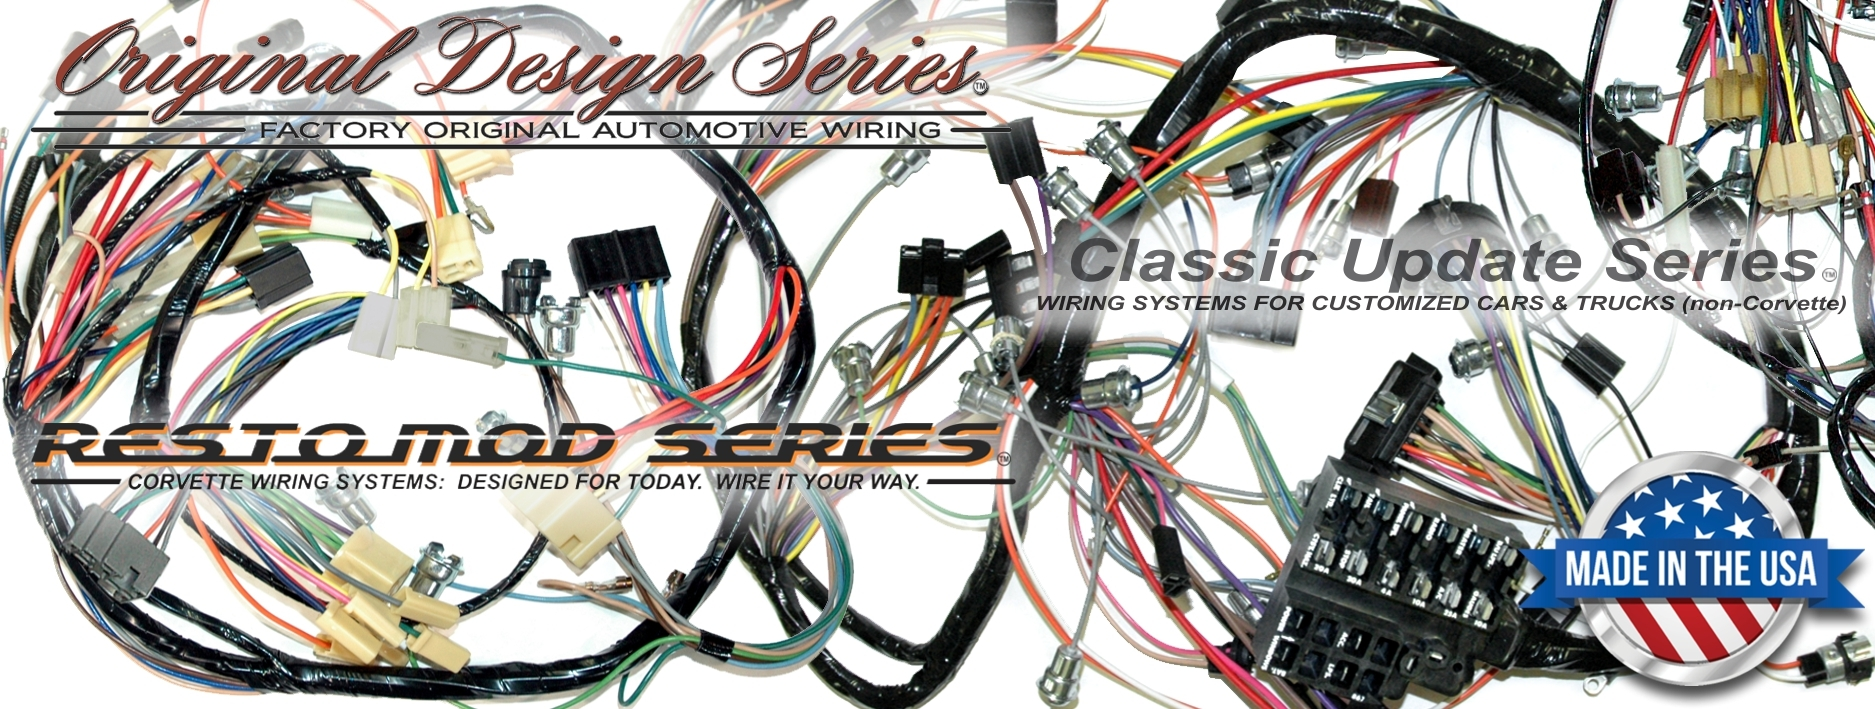 Dodge Durango Trailer Wiring Harness On 1952 Plymouth Wiring Harness